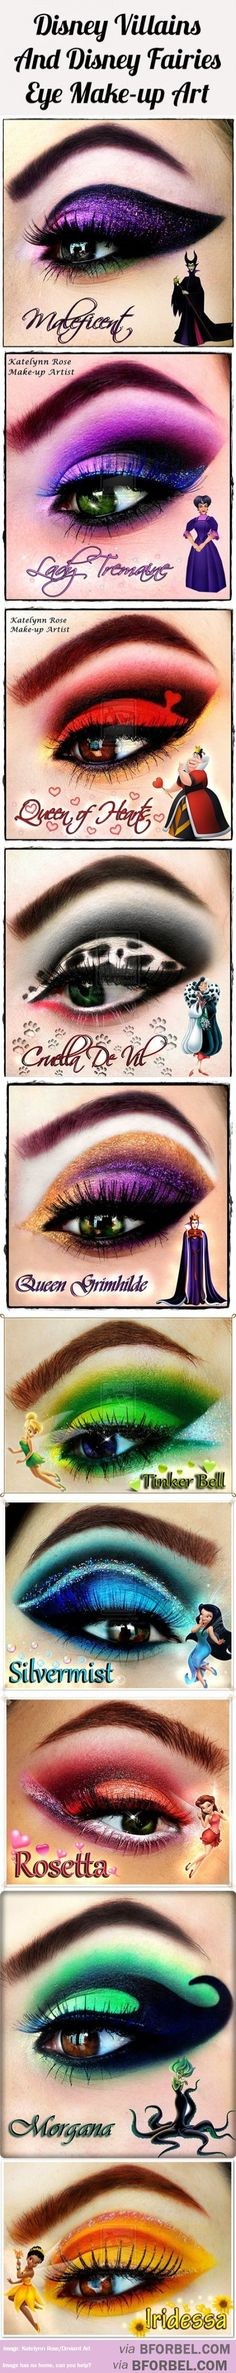 10 Disney Villains And Fairies Inspired Beautiful Eye Makeup?